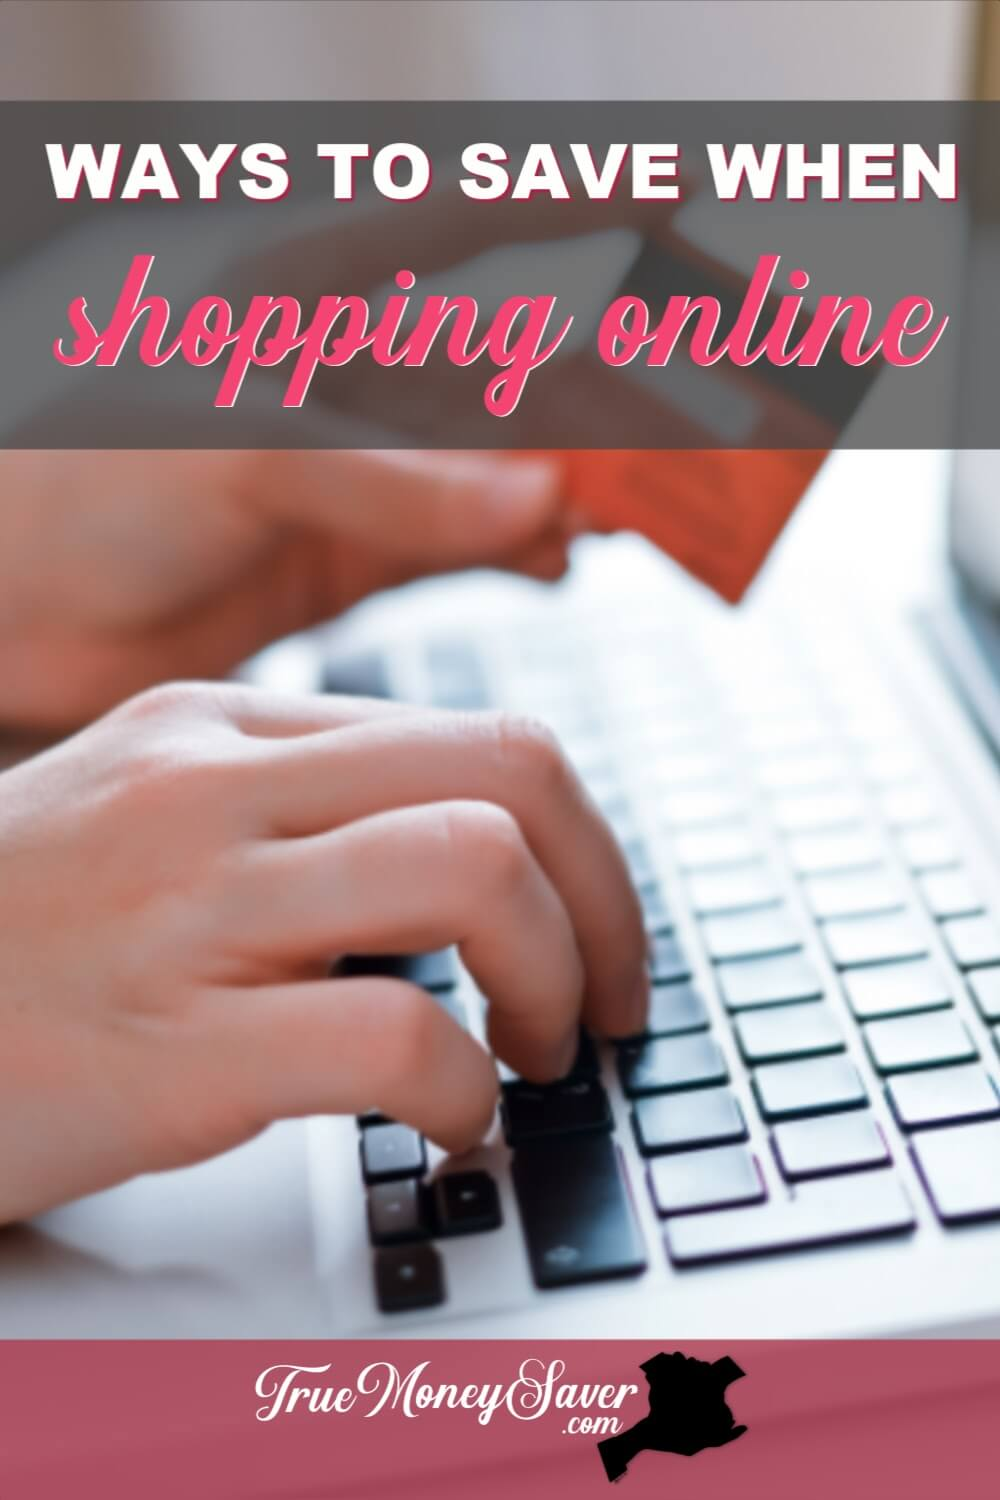 Saving money online isn\'t as hard as it used to be! Use these online shopping hack ideas to save you more this year! It\'s easier than you think. Start saving here!   #truemoneysaver  #savings  #shopping  #onlineshopping  #savingmoney  #shoppingonline #shoppingday #shoppingcart #onlineshoppingstore #onlineshoppingaddict #onlineshoppingcodes #onlinesavings